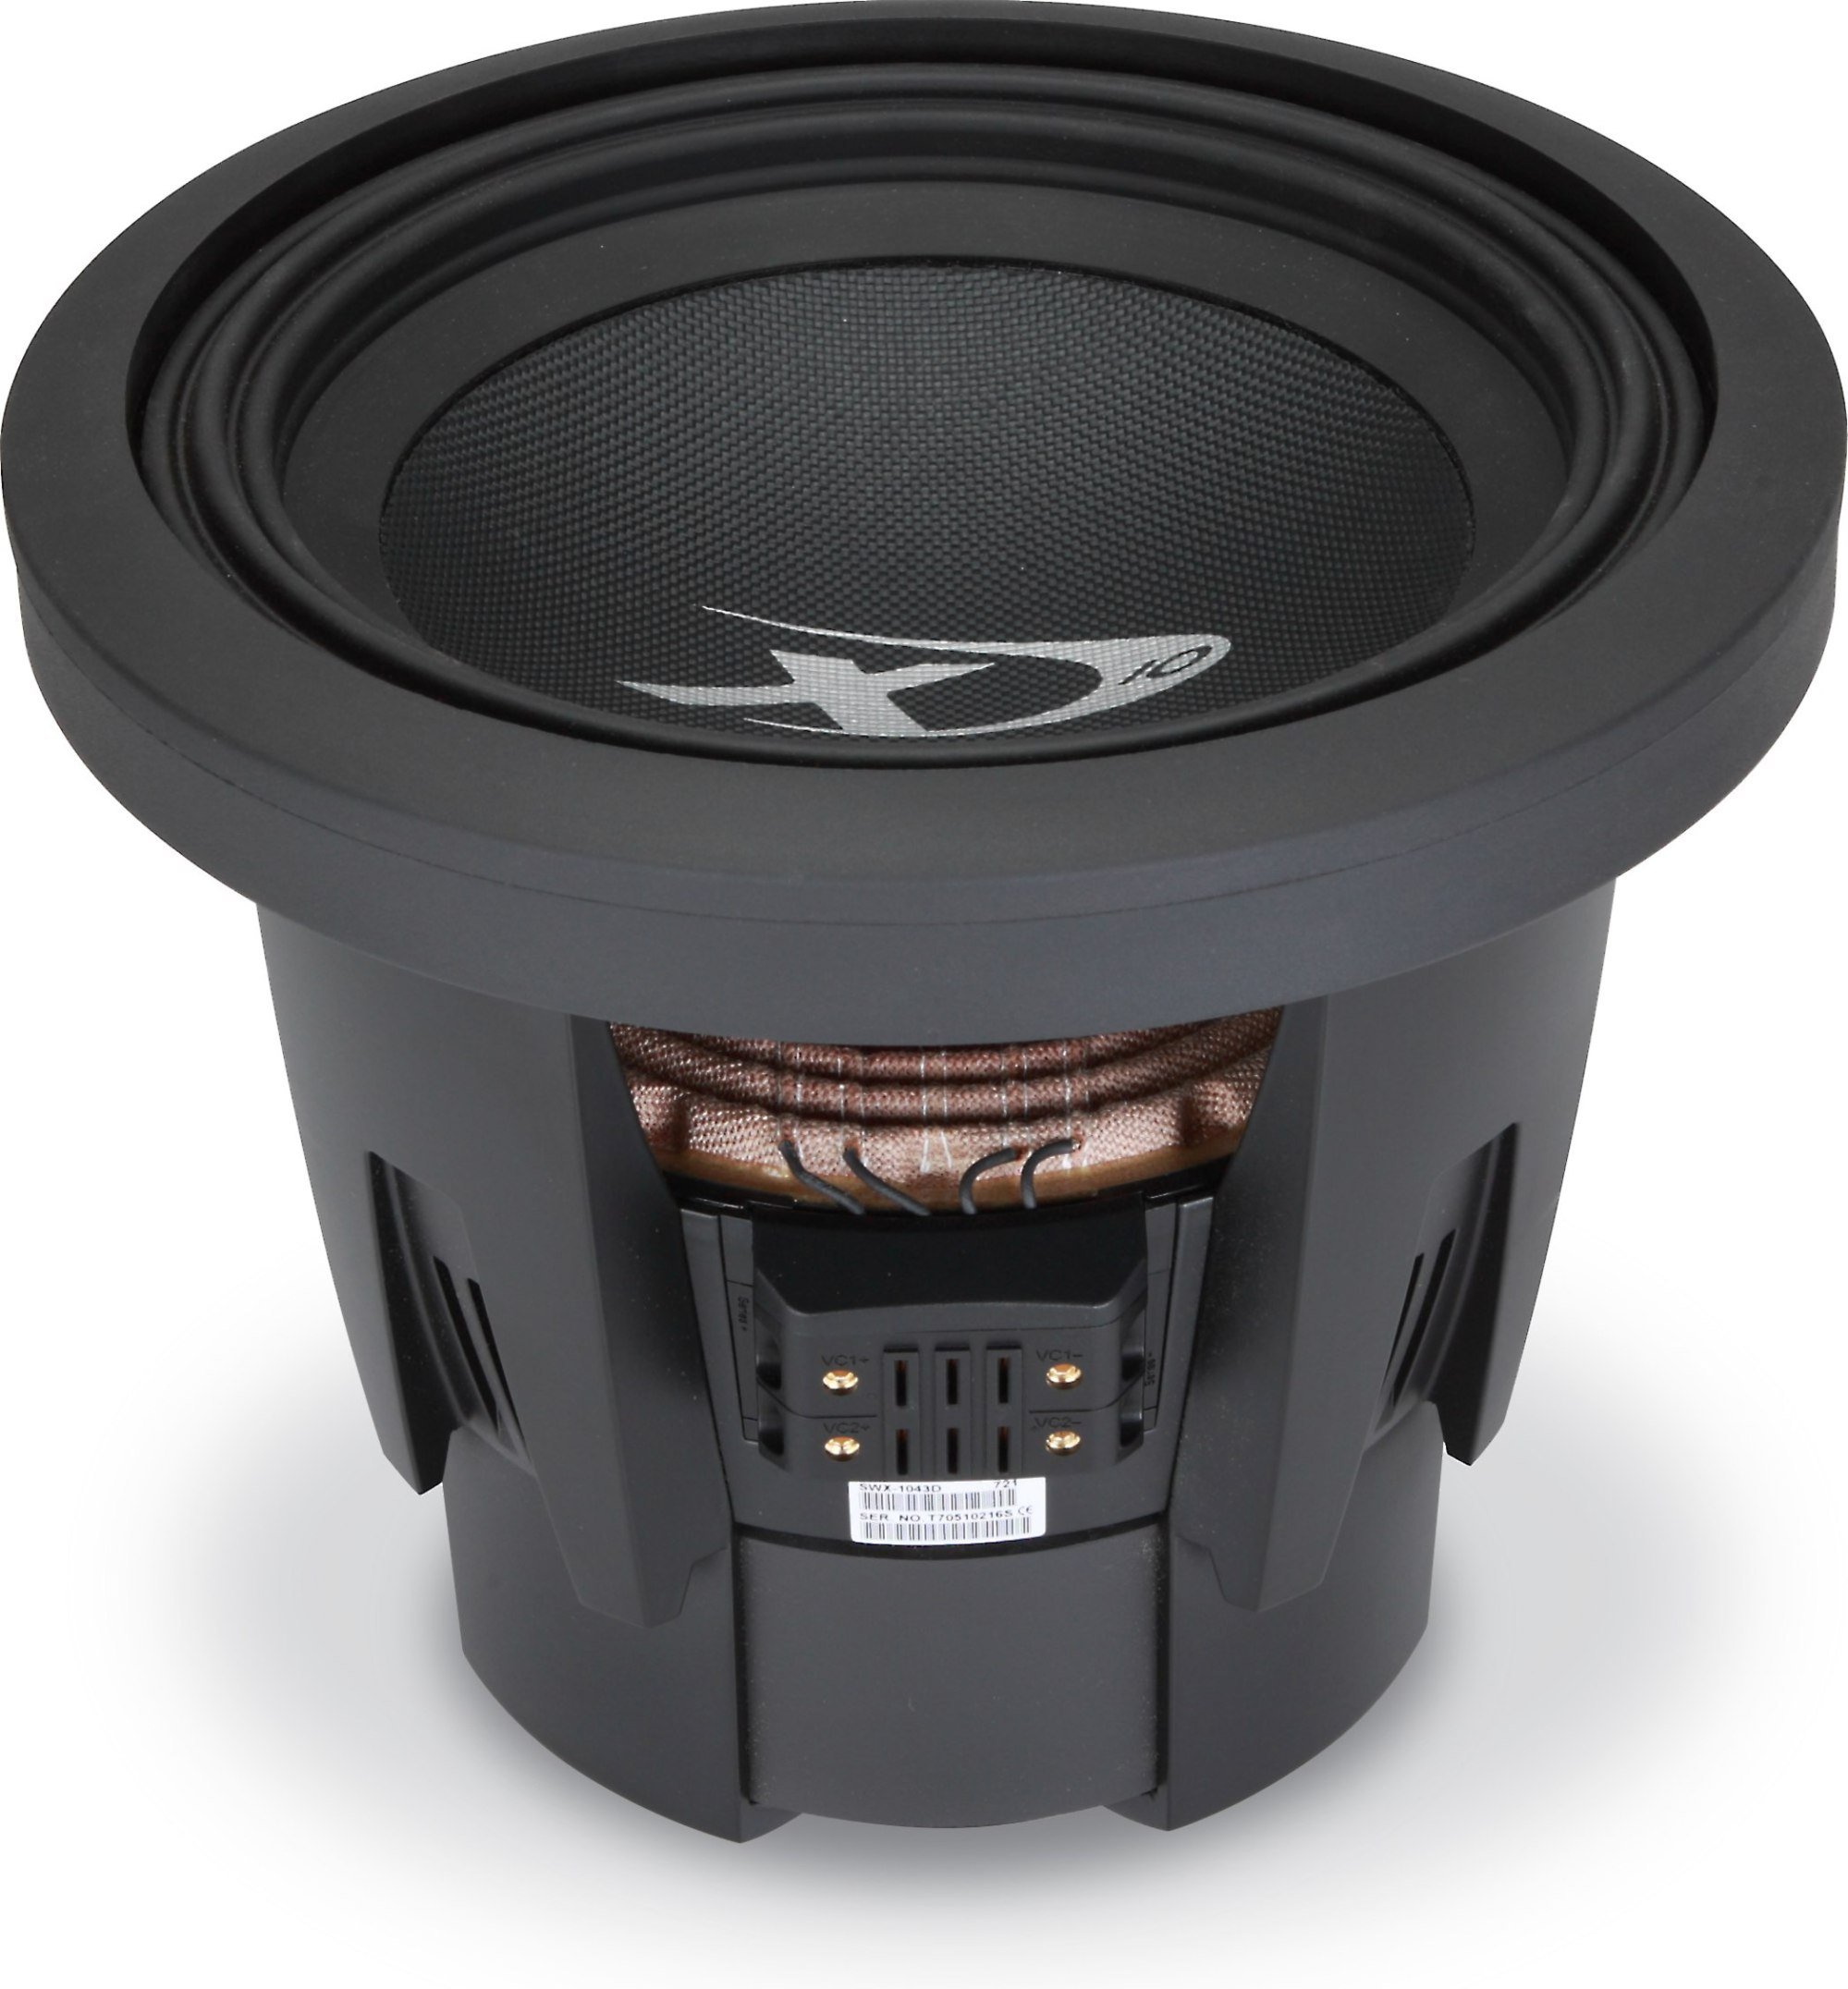 hight resolution of alpine swx 1043d type x 10 subwoofer with dual 4 ohm voice coils at crutchfield com